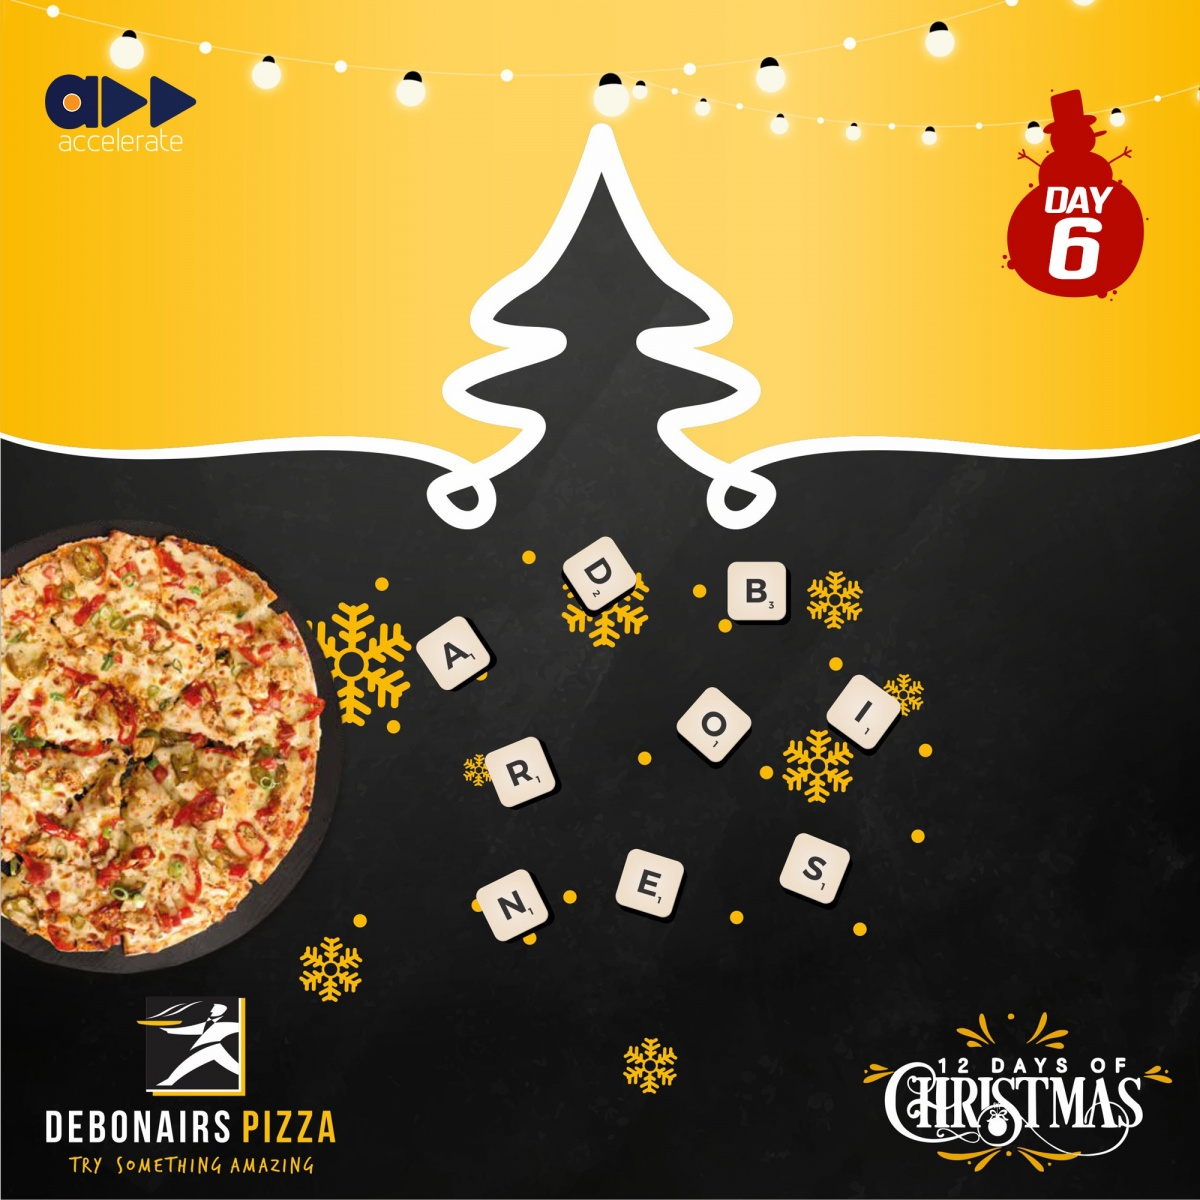 12 Days Of Christmas Day 6 15 Units Of Debonairs Large Pizza Up For Grabs Acceleratetv